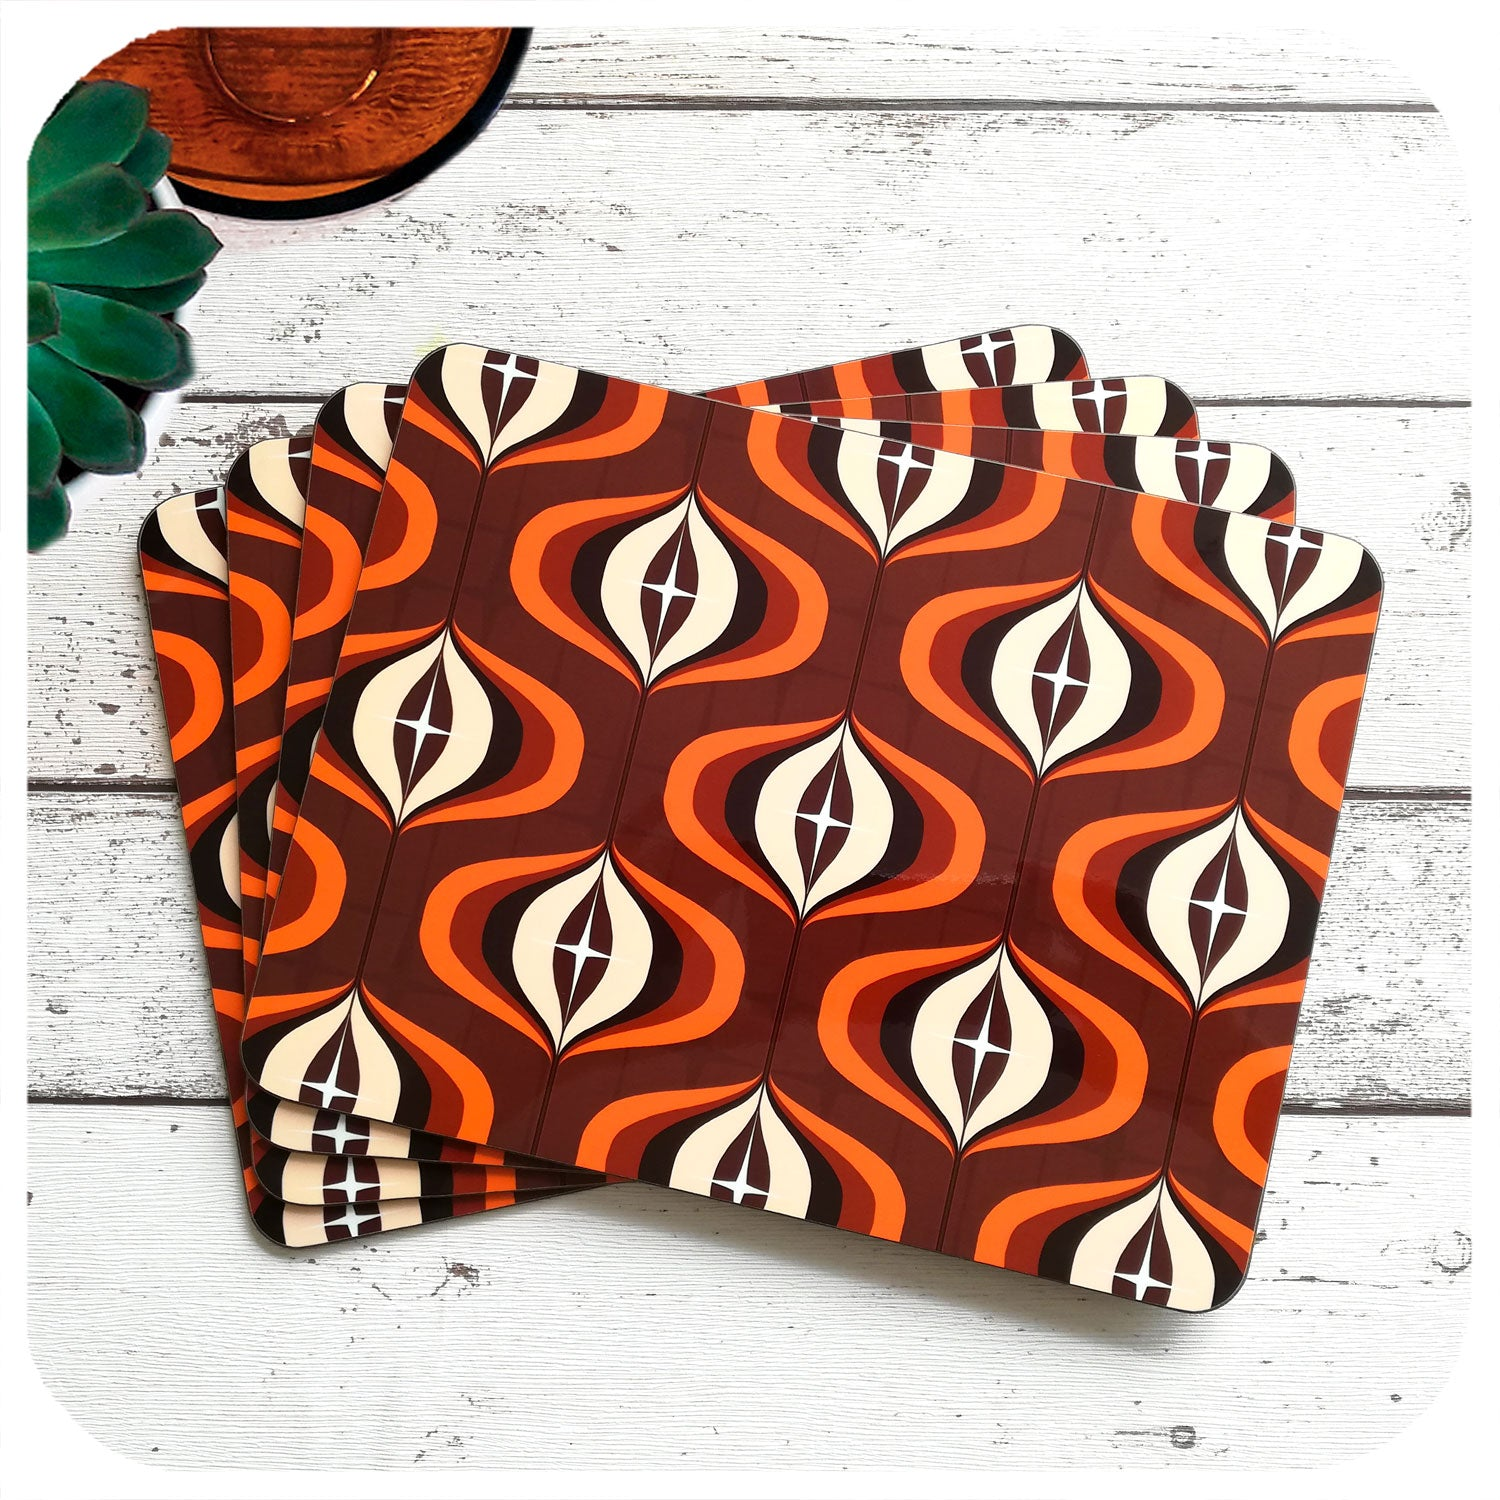 70s Style Op Art Placemats in Orange and Brown, set of 4 laid out in a fan | The Inkabilly Emporium